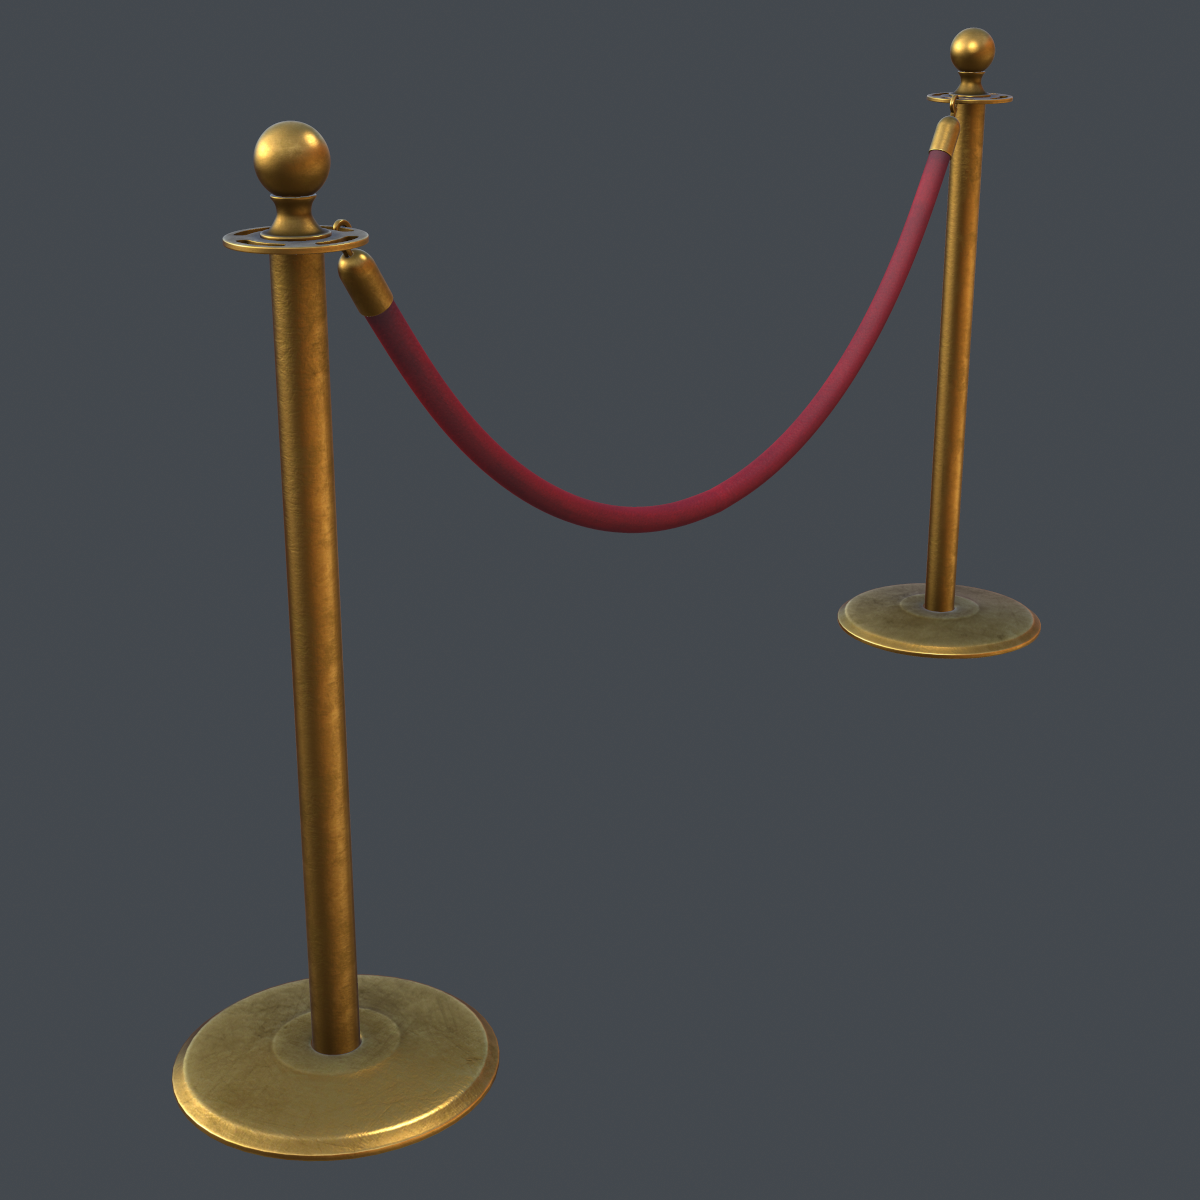 stanchion and velvet rope | cgtrader